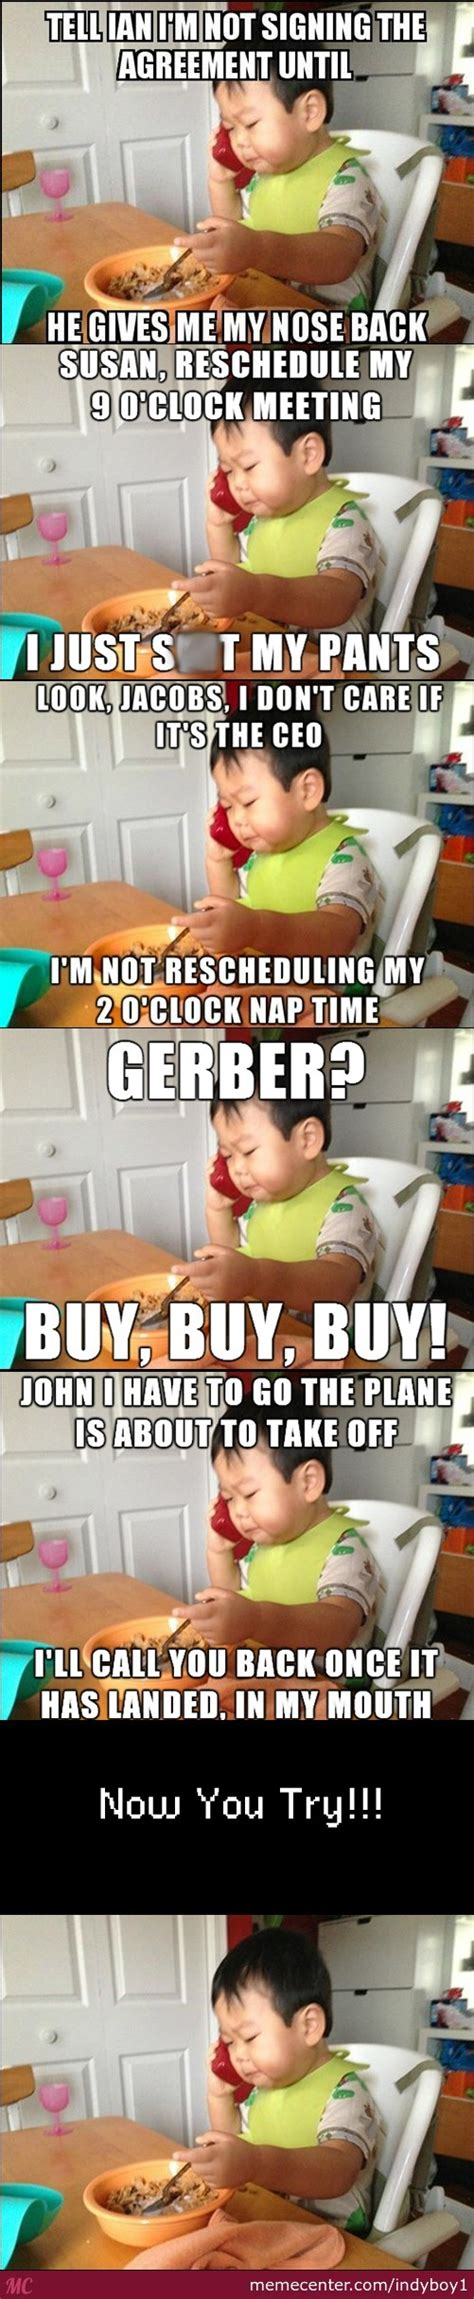 Business Baby Meme Pics For Gt Business Baby Meme